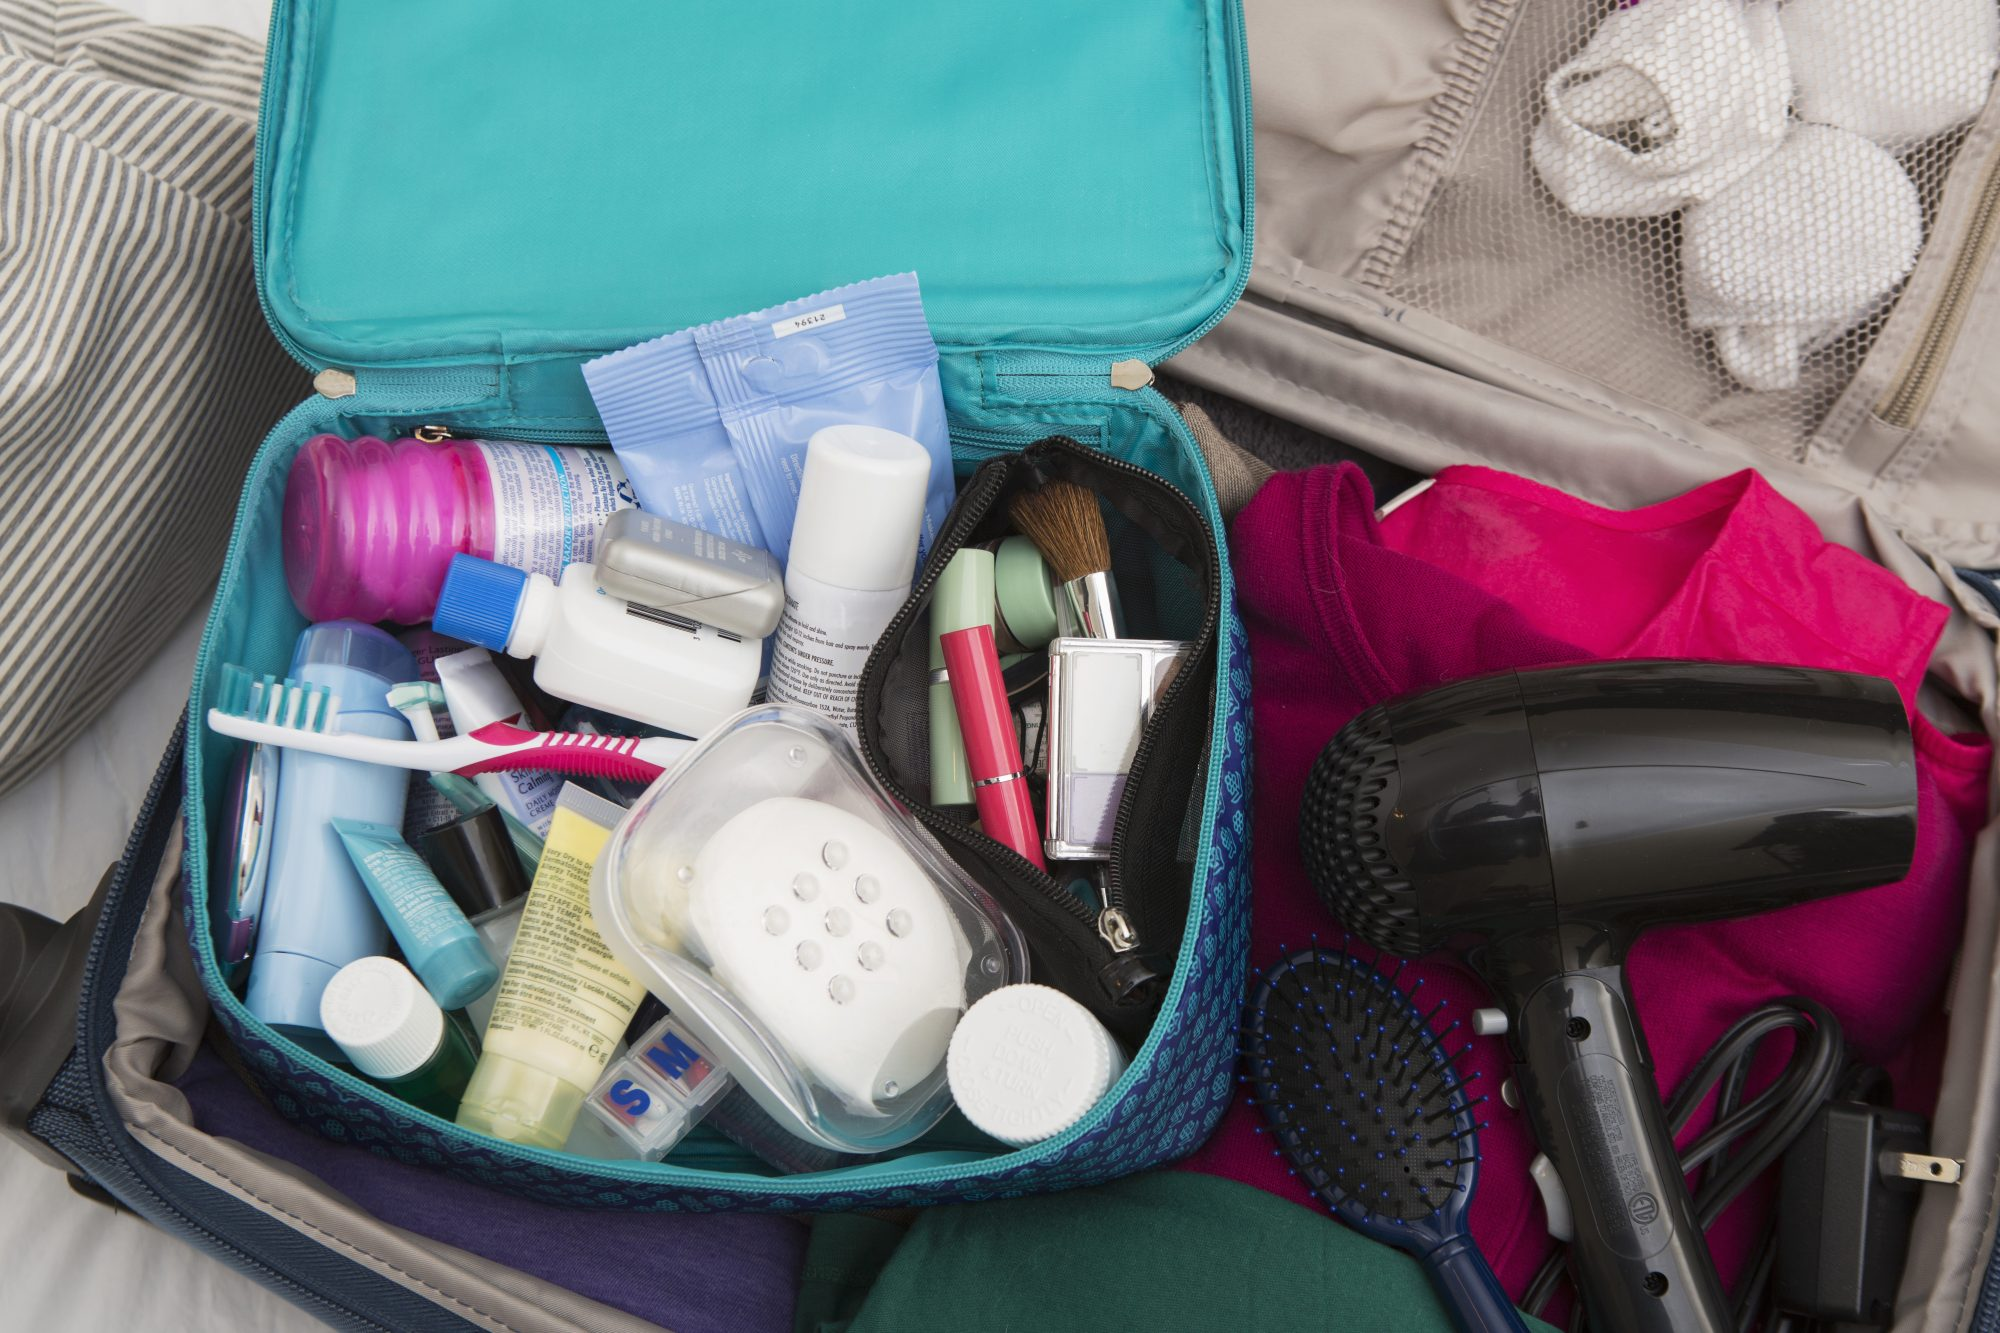 Packed Suitcase with Hair Dryer